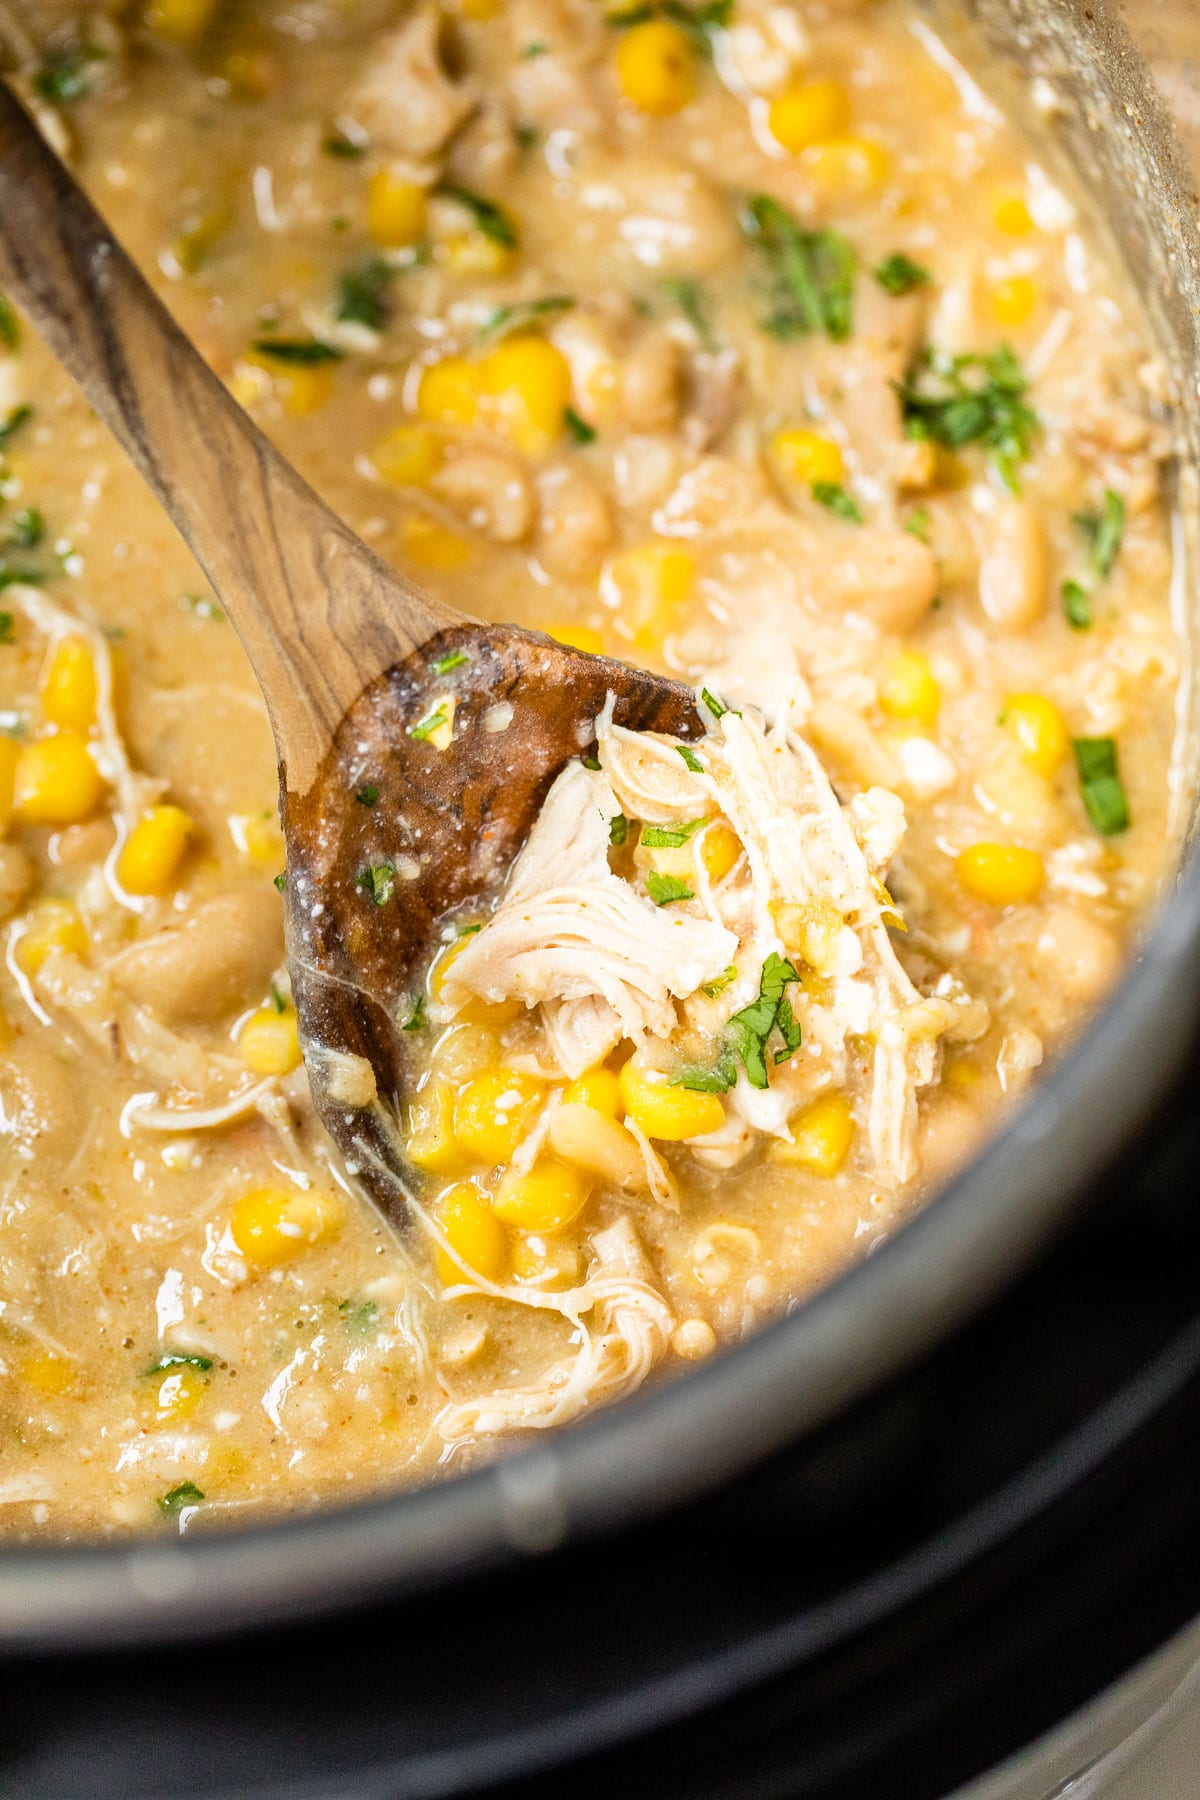 cooked shredded chicken, corn and broth in a pressure cooker